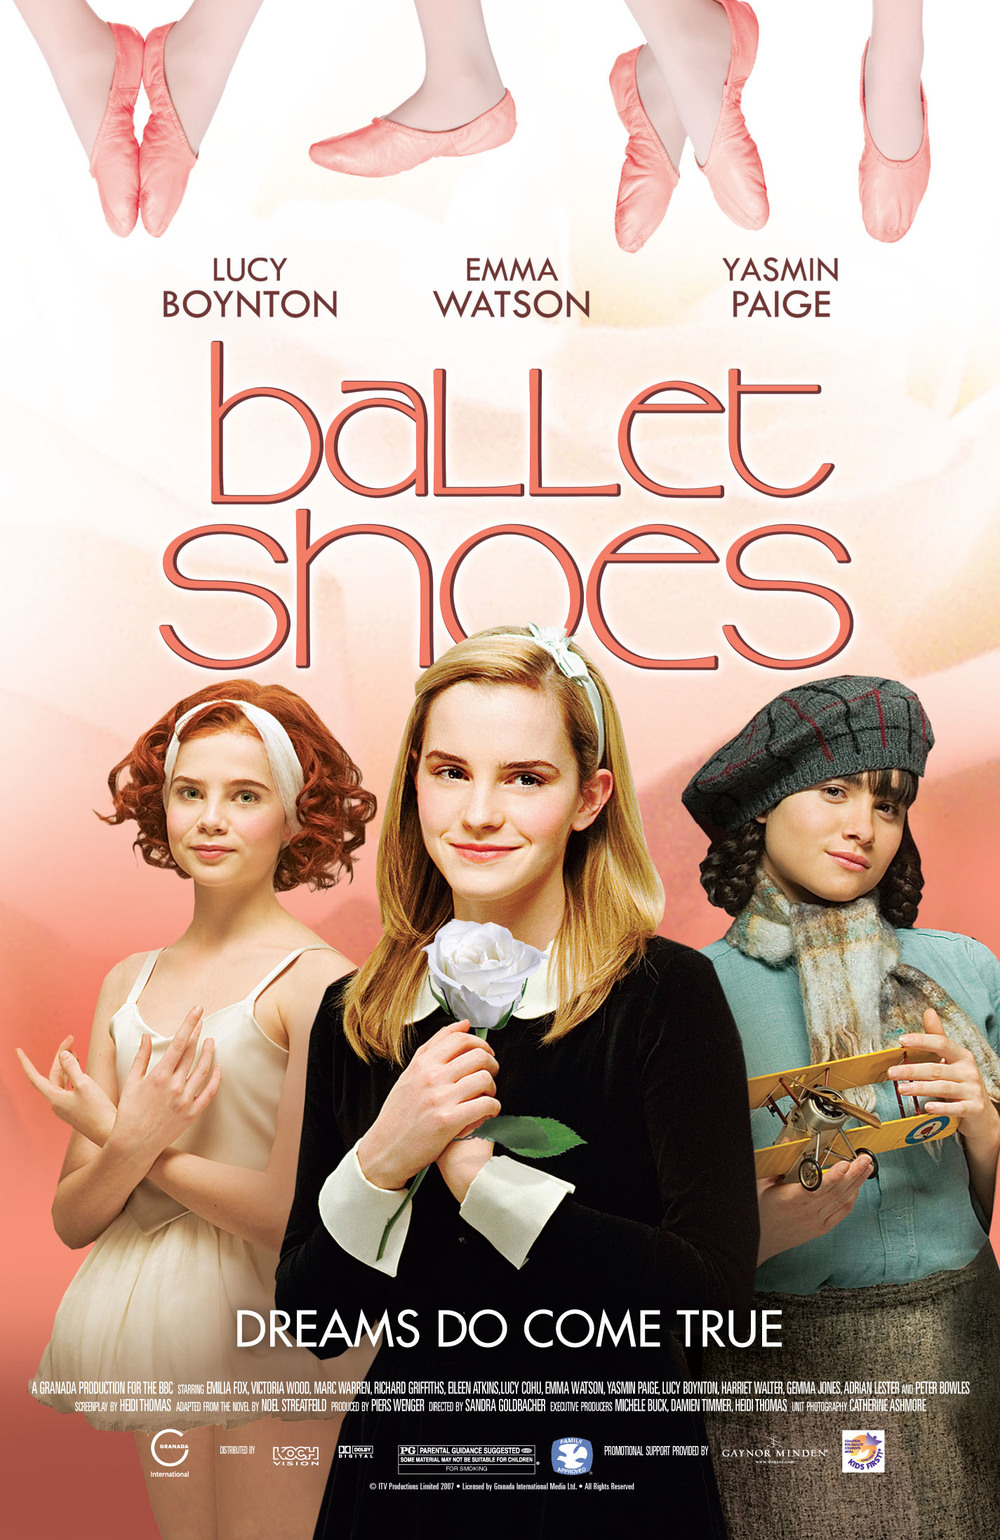 "<a href=""http://www.totallyemmawatson.com/gallery/acting-career/ballet-shoes/posters"">Posters</a>"